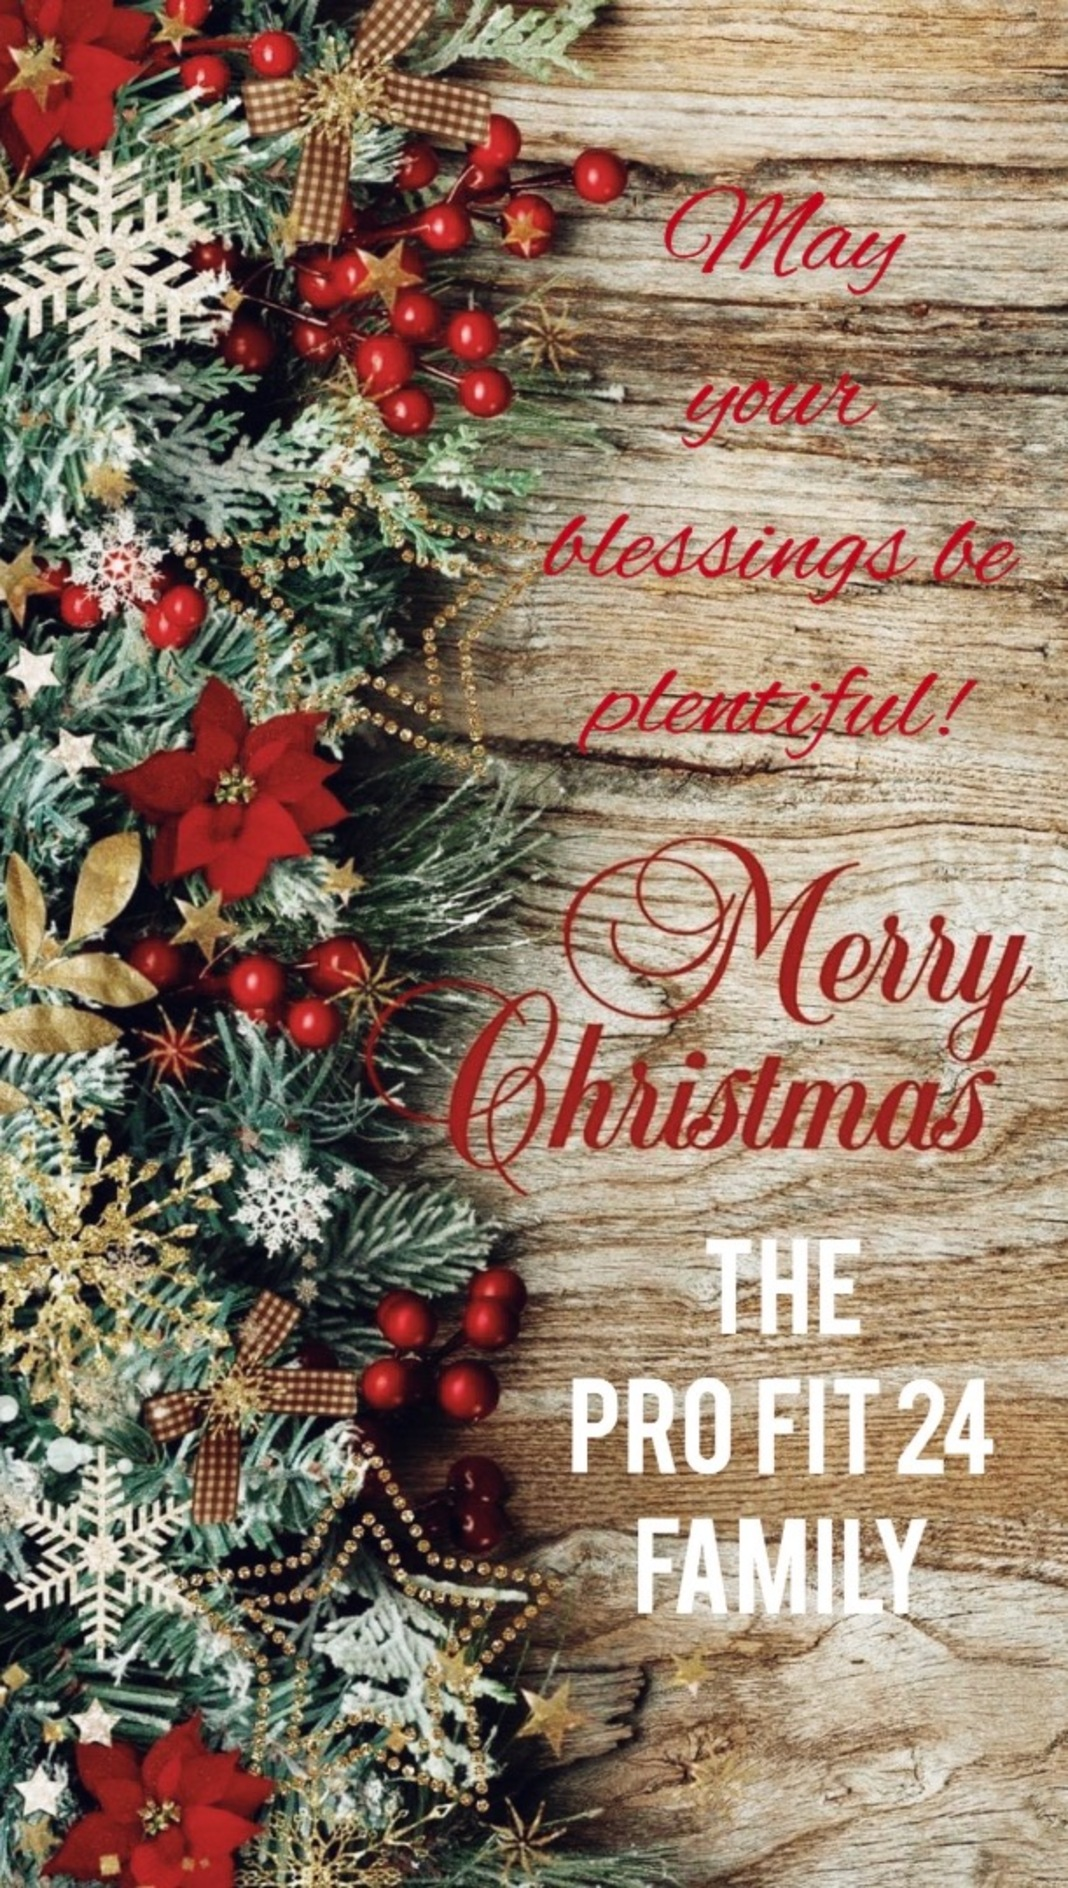 🌲Merry Christmas from The Pro Fit 24 Family Image